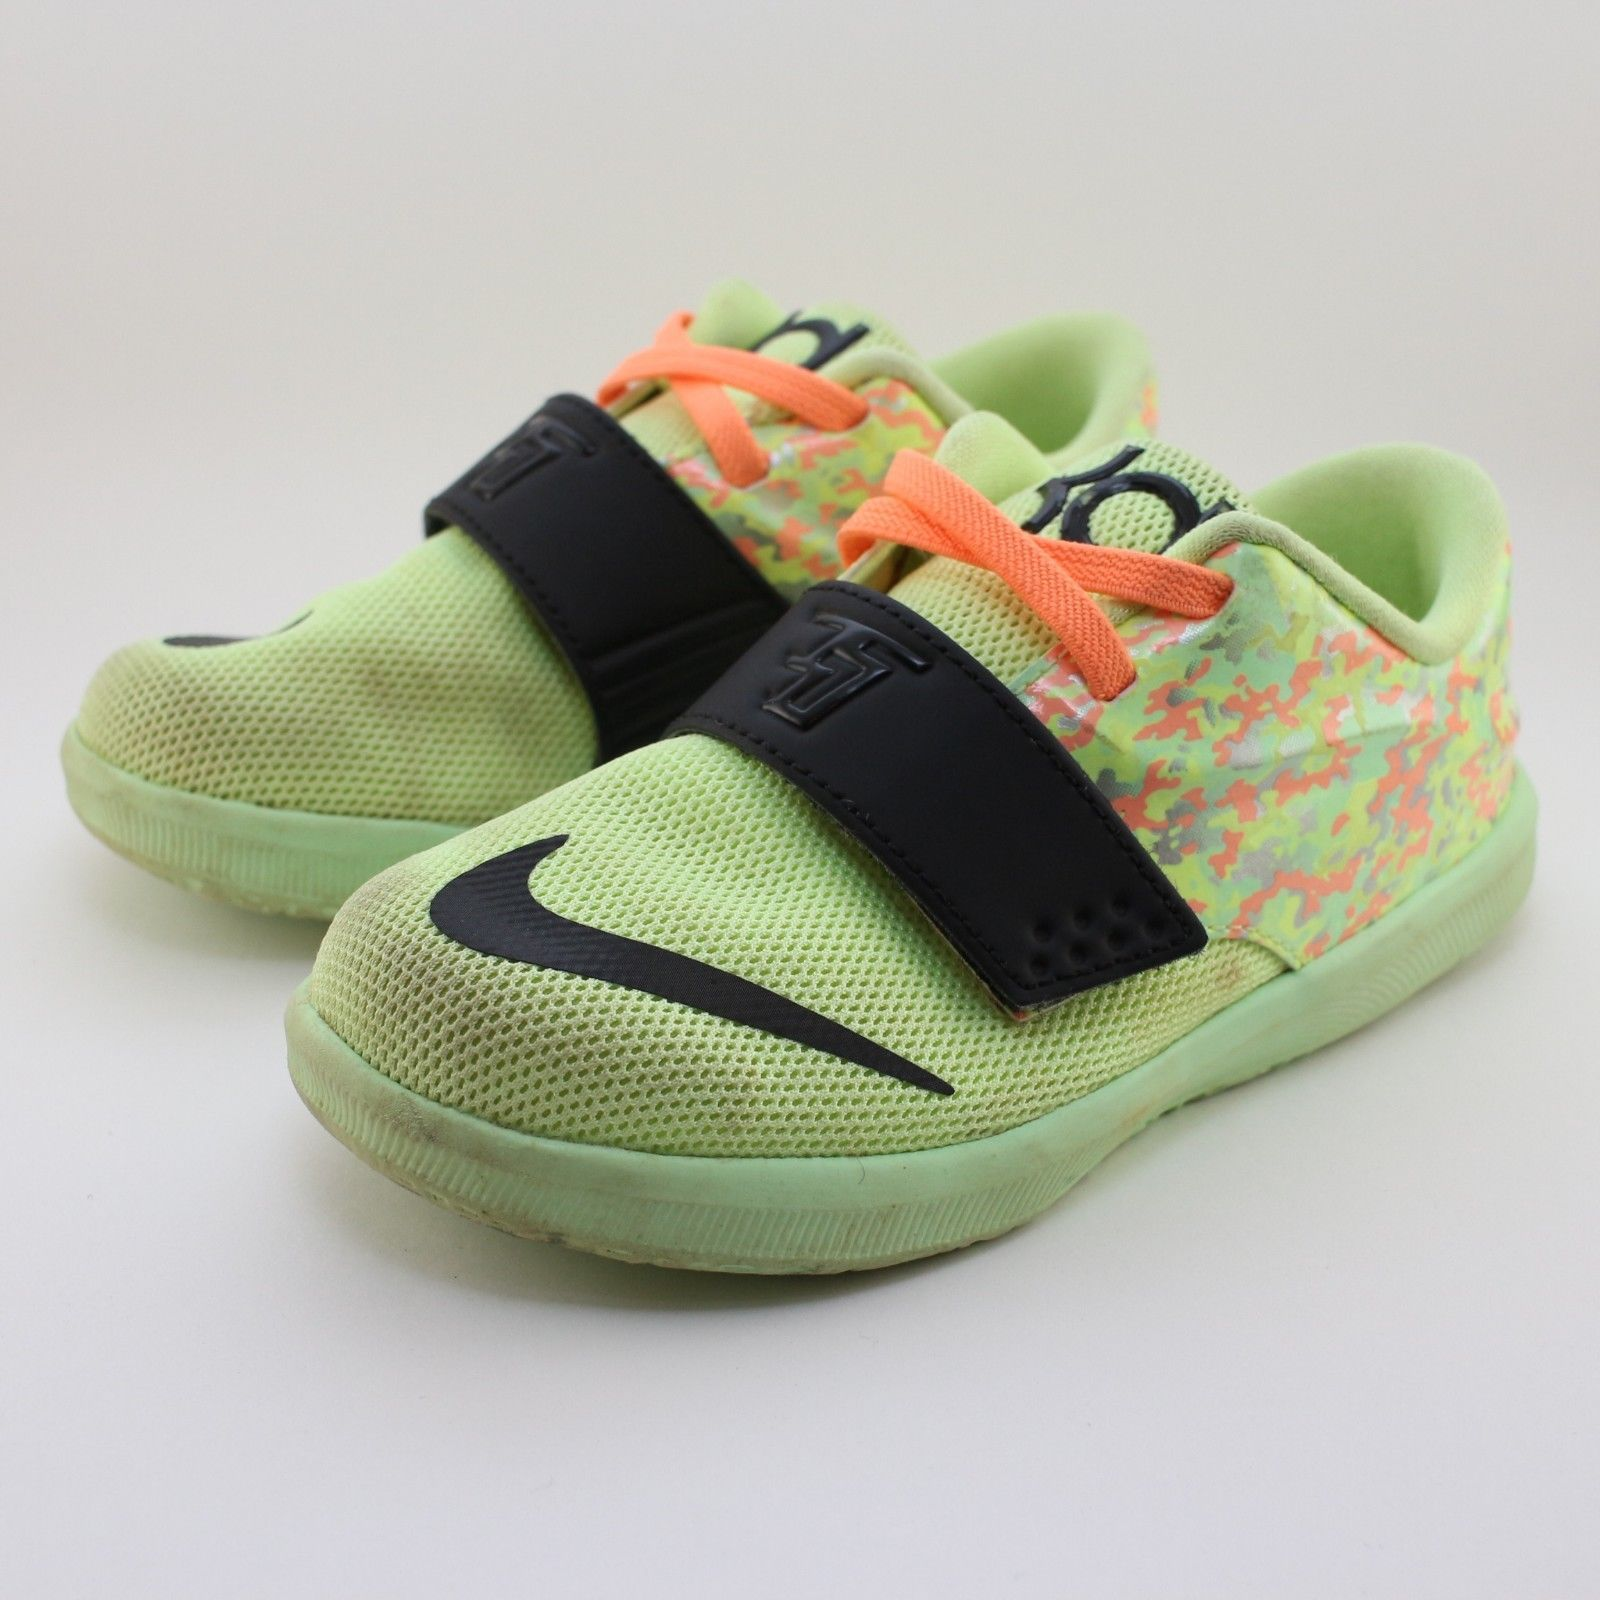 low priced 85ab6 04814 ... official nike kevin durant kd 7 easter lime black and 30 similar items.  57 be7ae